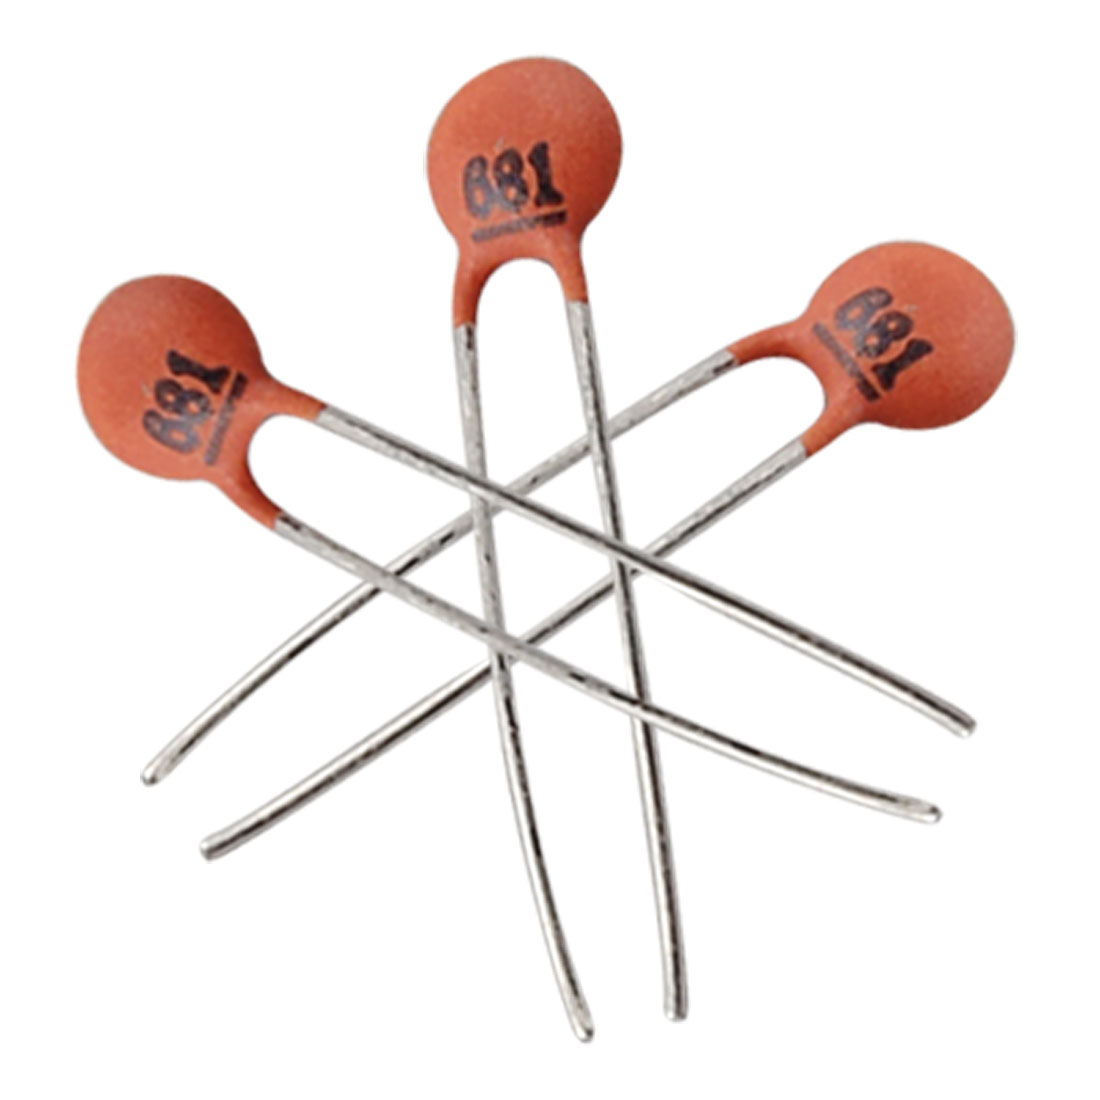 50 x 680pF 2.5mm Pitch Through Hole Ceramic Capacitors